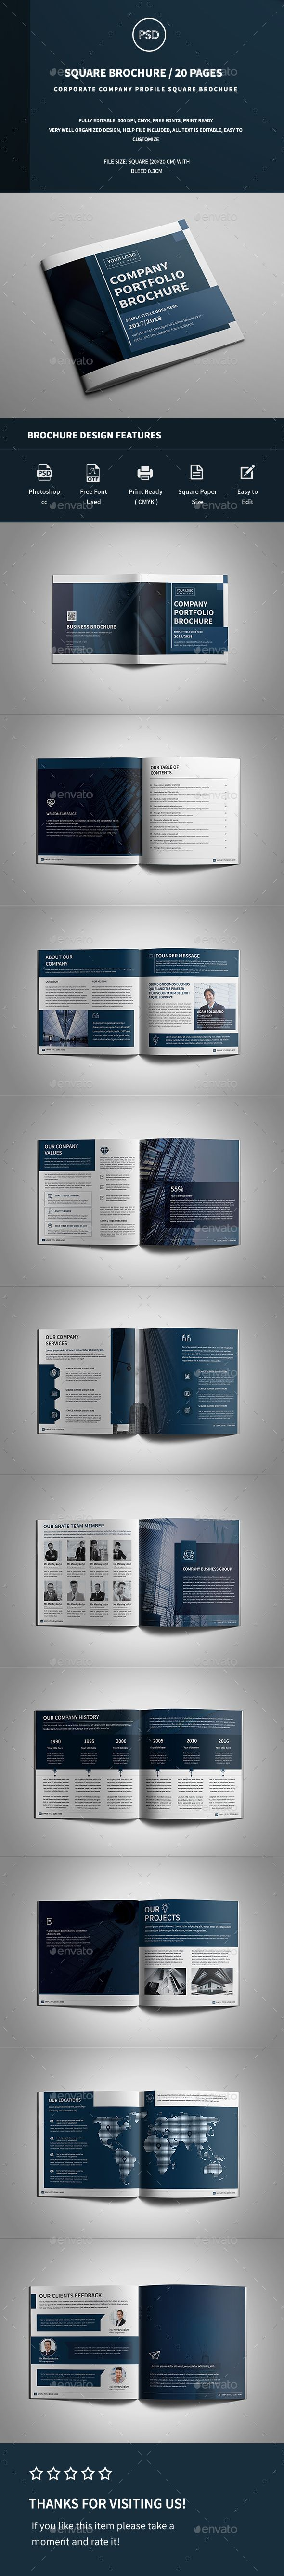 Square Company Profile Brochure - Corporate Brochures Download here : https://graphicriver.net/item/square-company-profile-brochure/19465791?s_rank=45&ref=Al-fatih